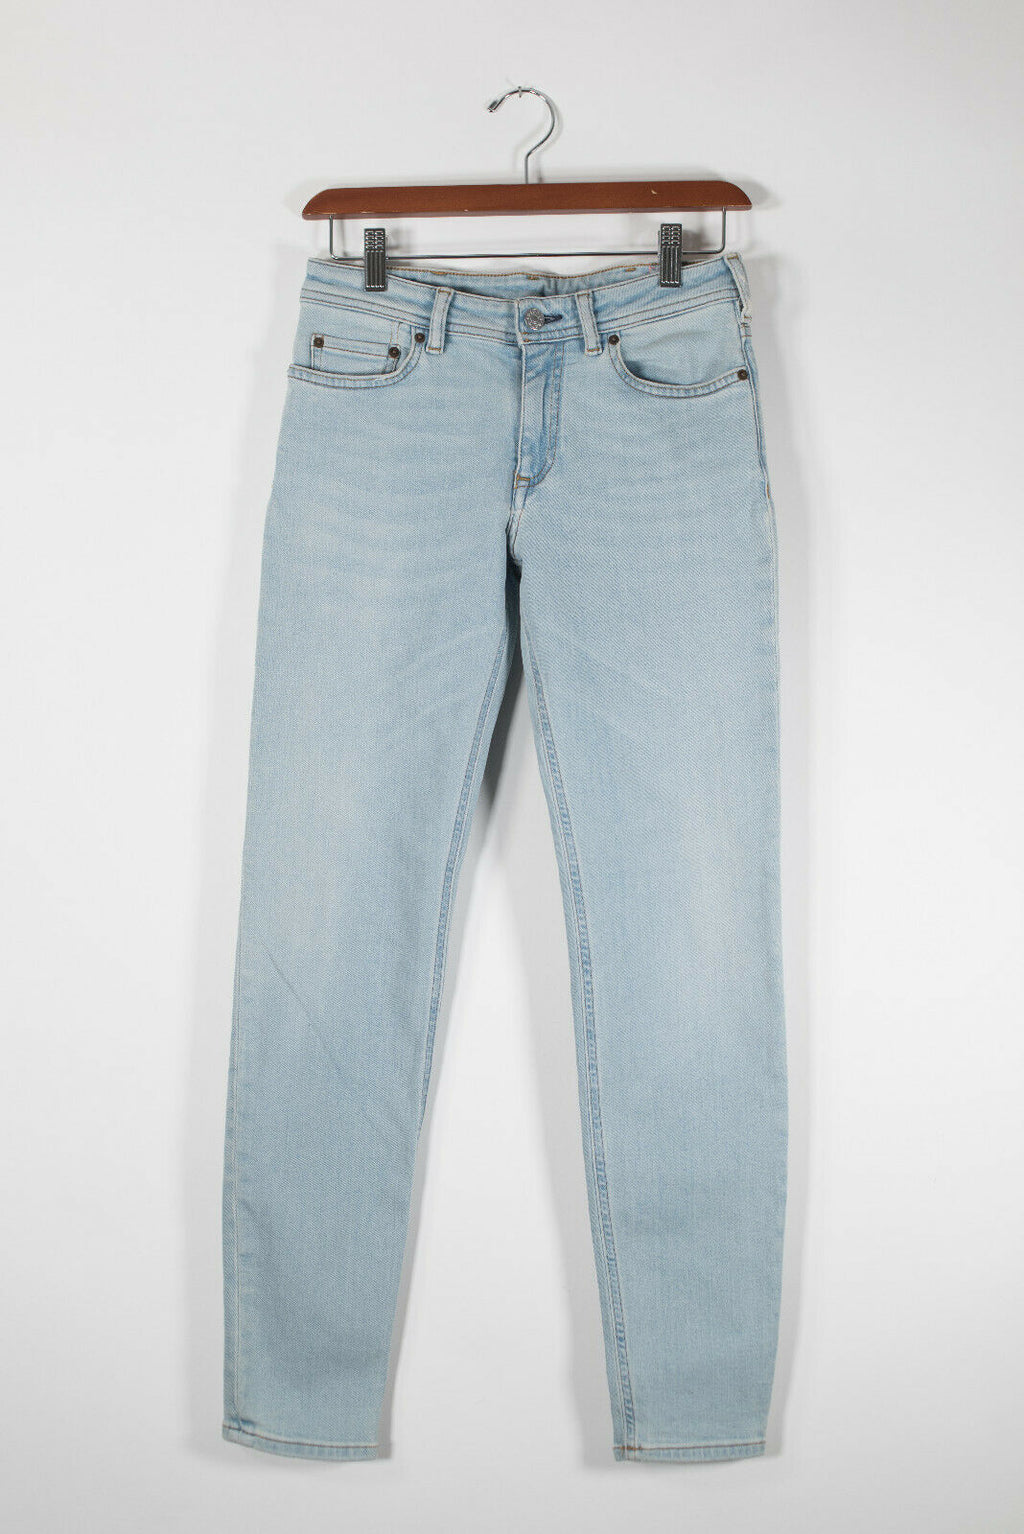 Acne Studios Bla Konst Womens Size 26 Small Light Blue Jeans Skinny Denim NWT